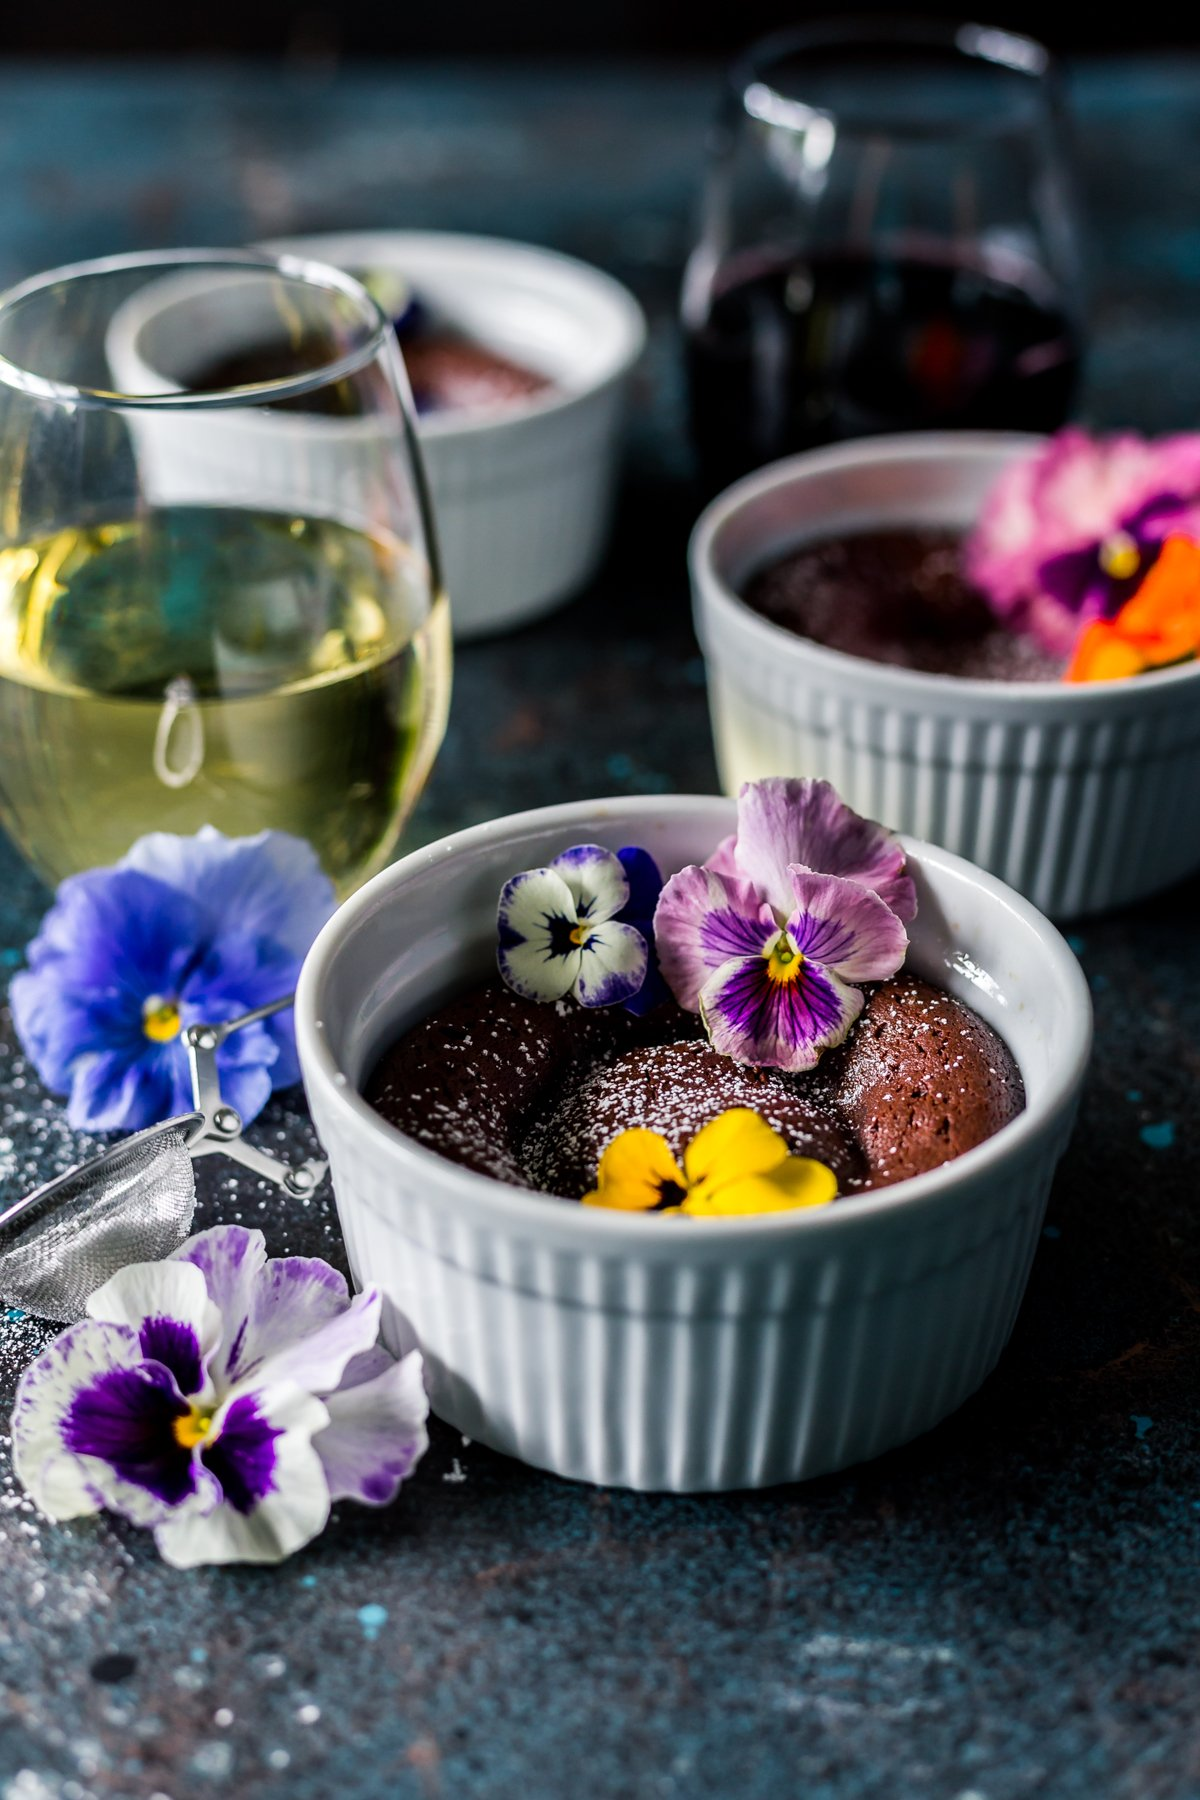 Break out of your routine with some easy recipes for dessert like these chocolate lava cakes! Perfect for sharing! | asimplepantry.com